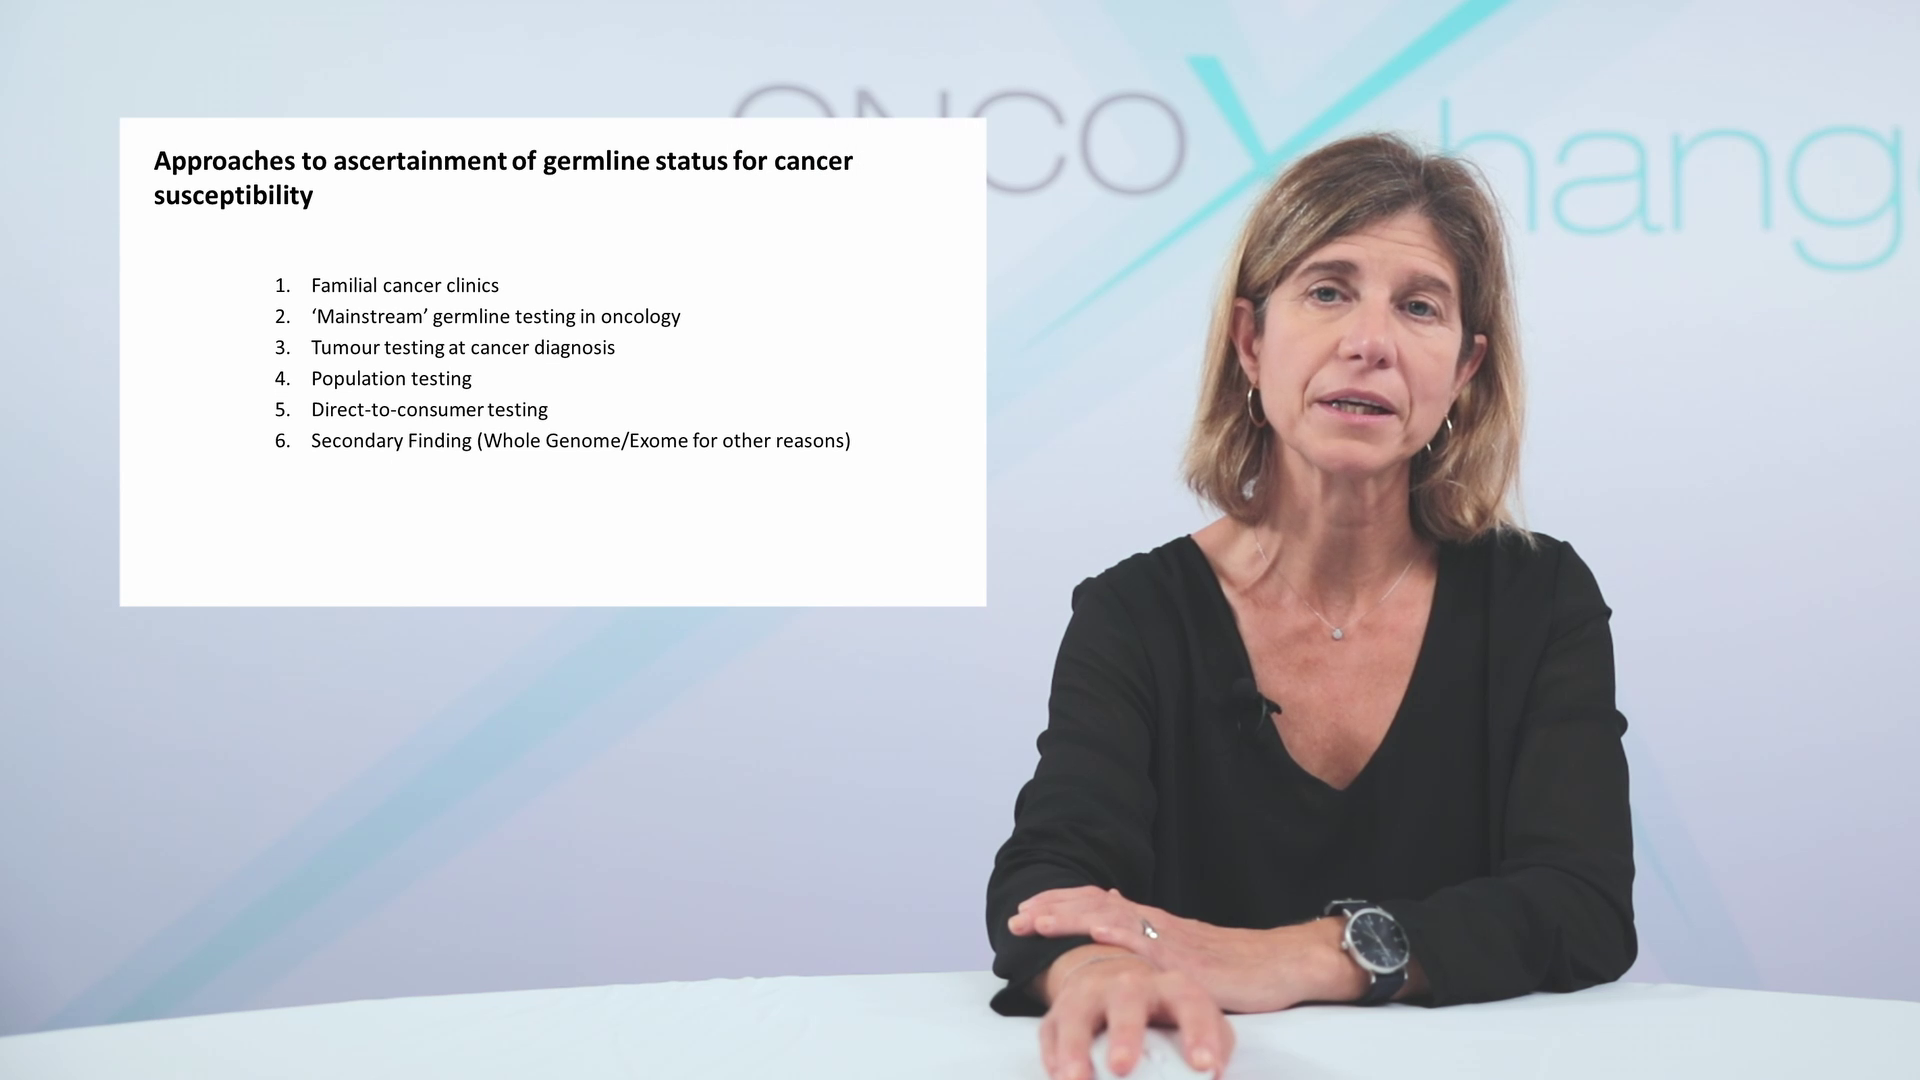 Multidisciplinary management of germline and somatic gene alterations in patients with metastatic breast cancer.